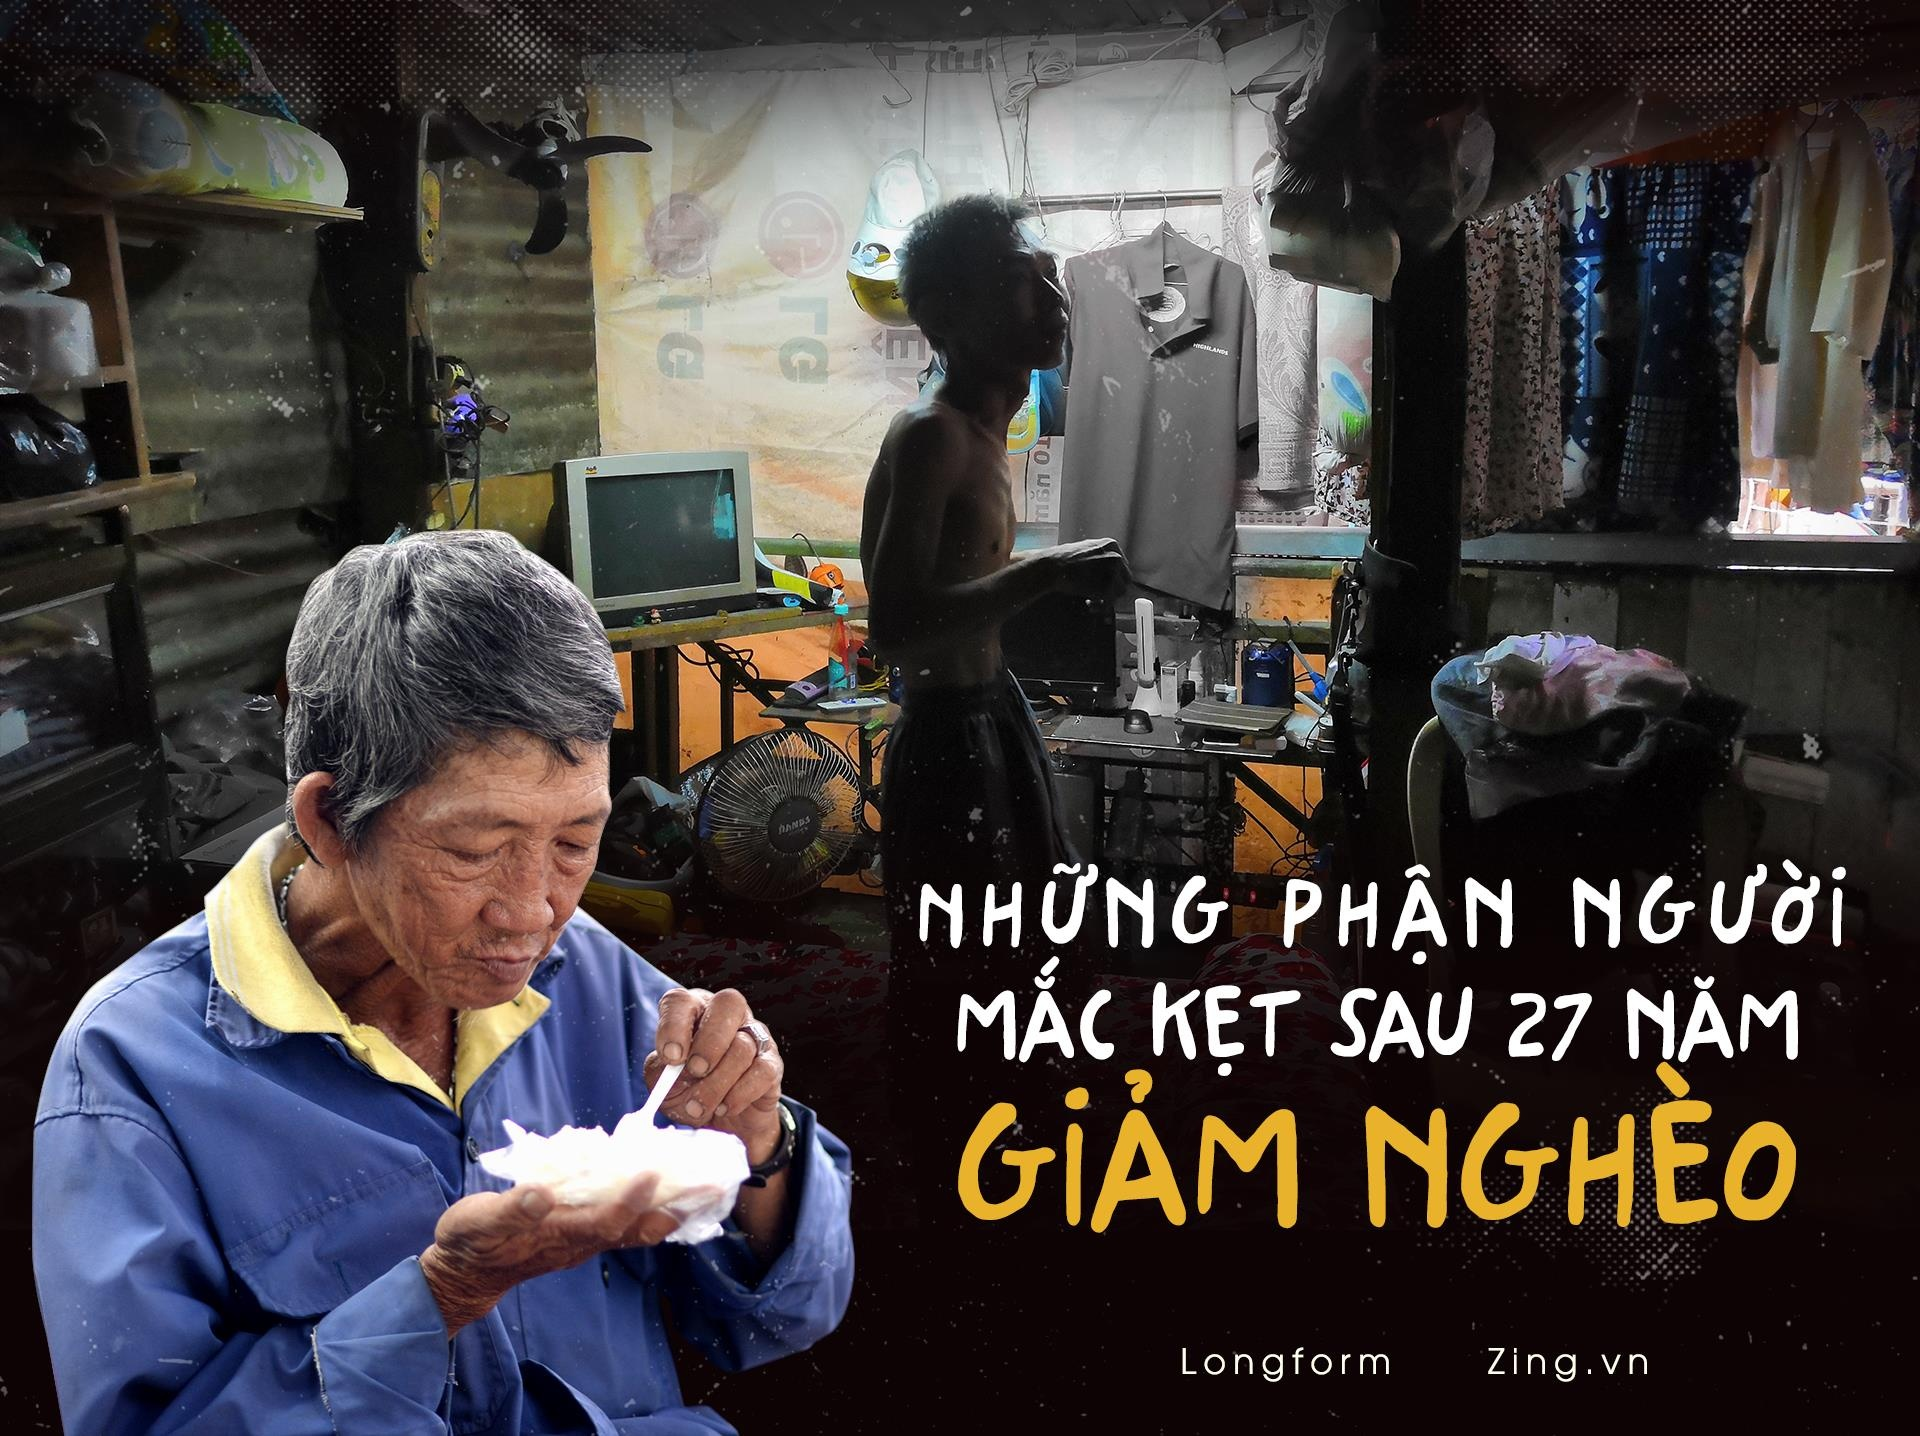 giam ngheo TPHCM anh 2